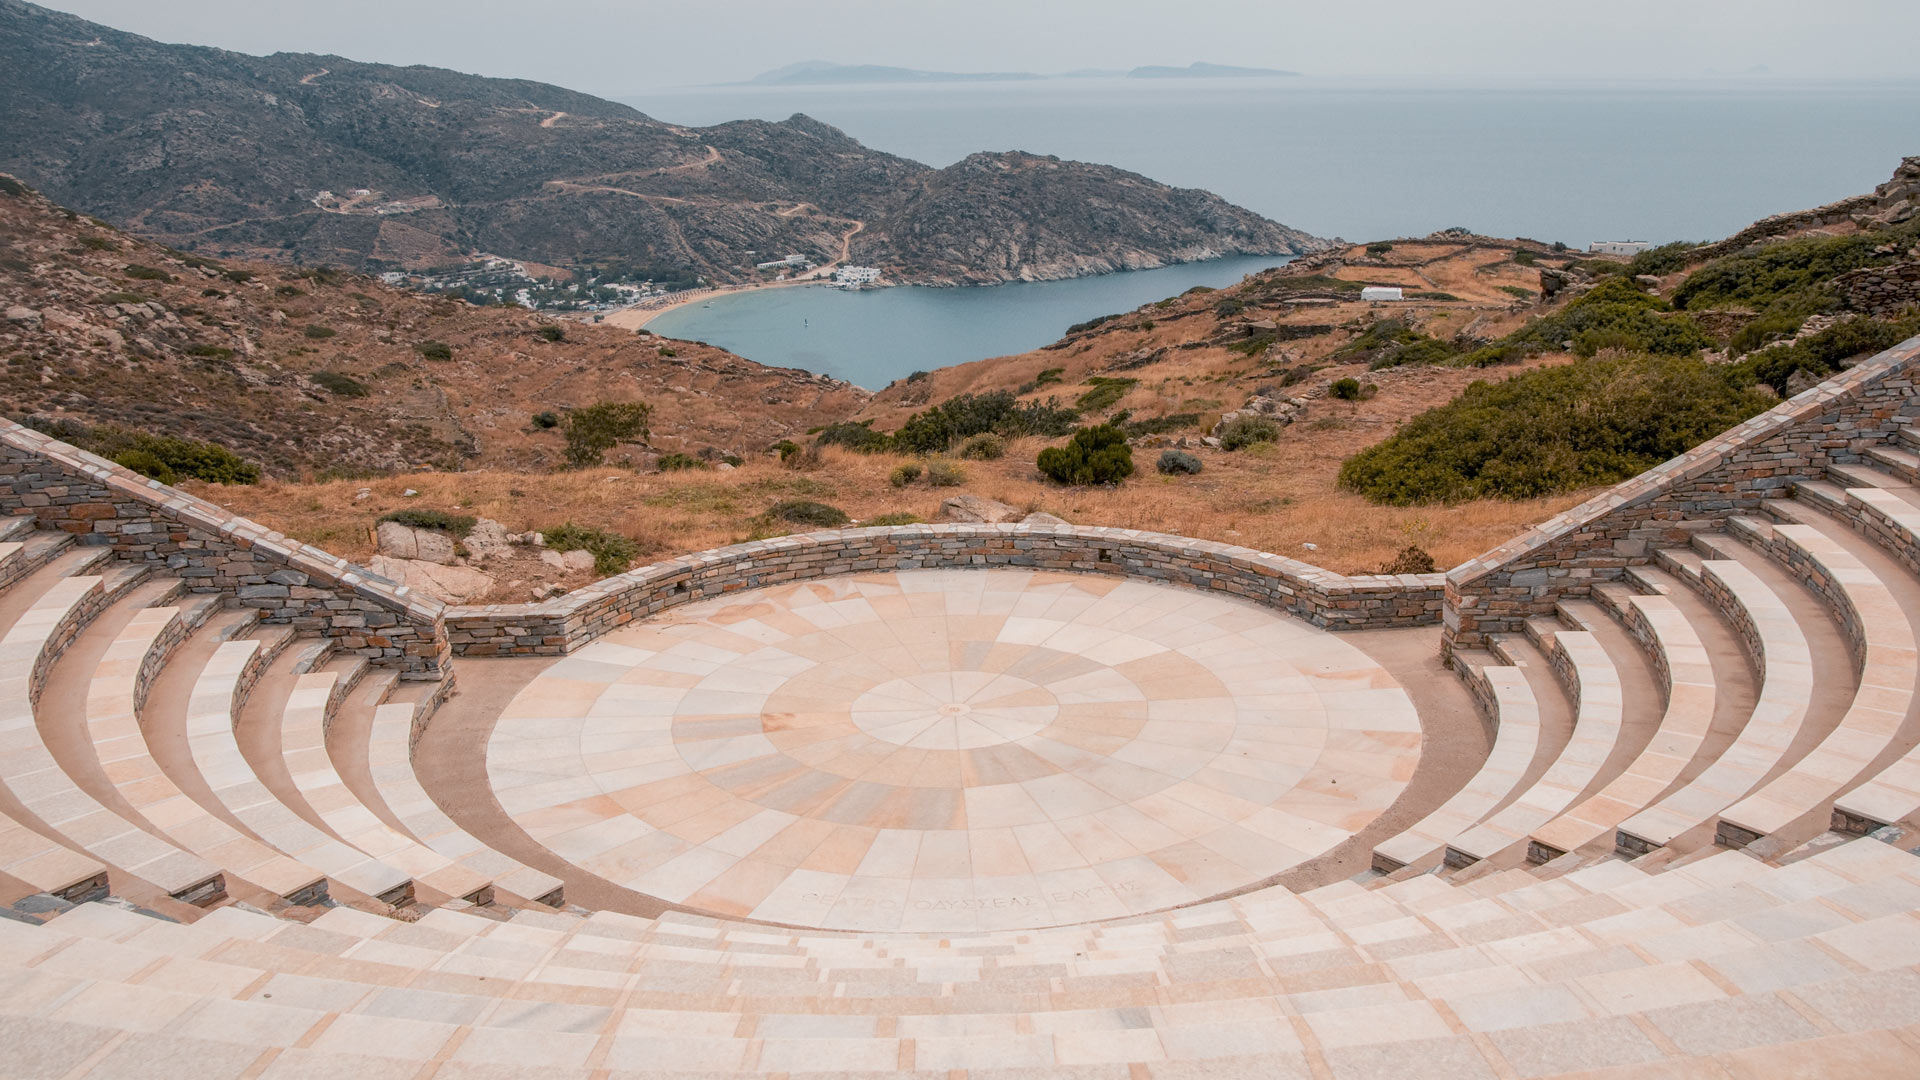 Head up to the theatre named after Greece's most famous modern-day poet, the Nobel Prize-winning Odysseus Elytis